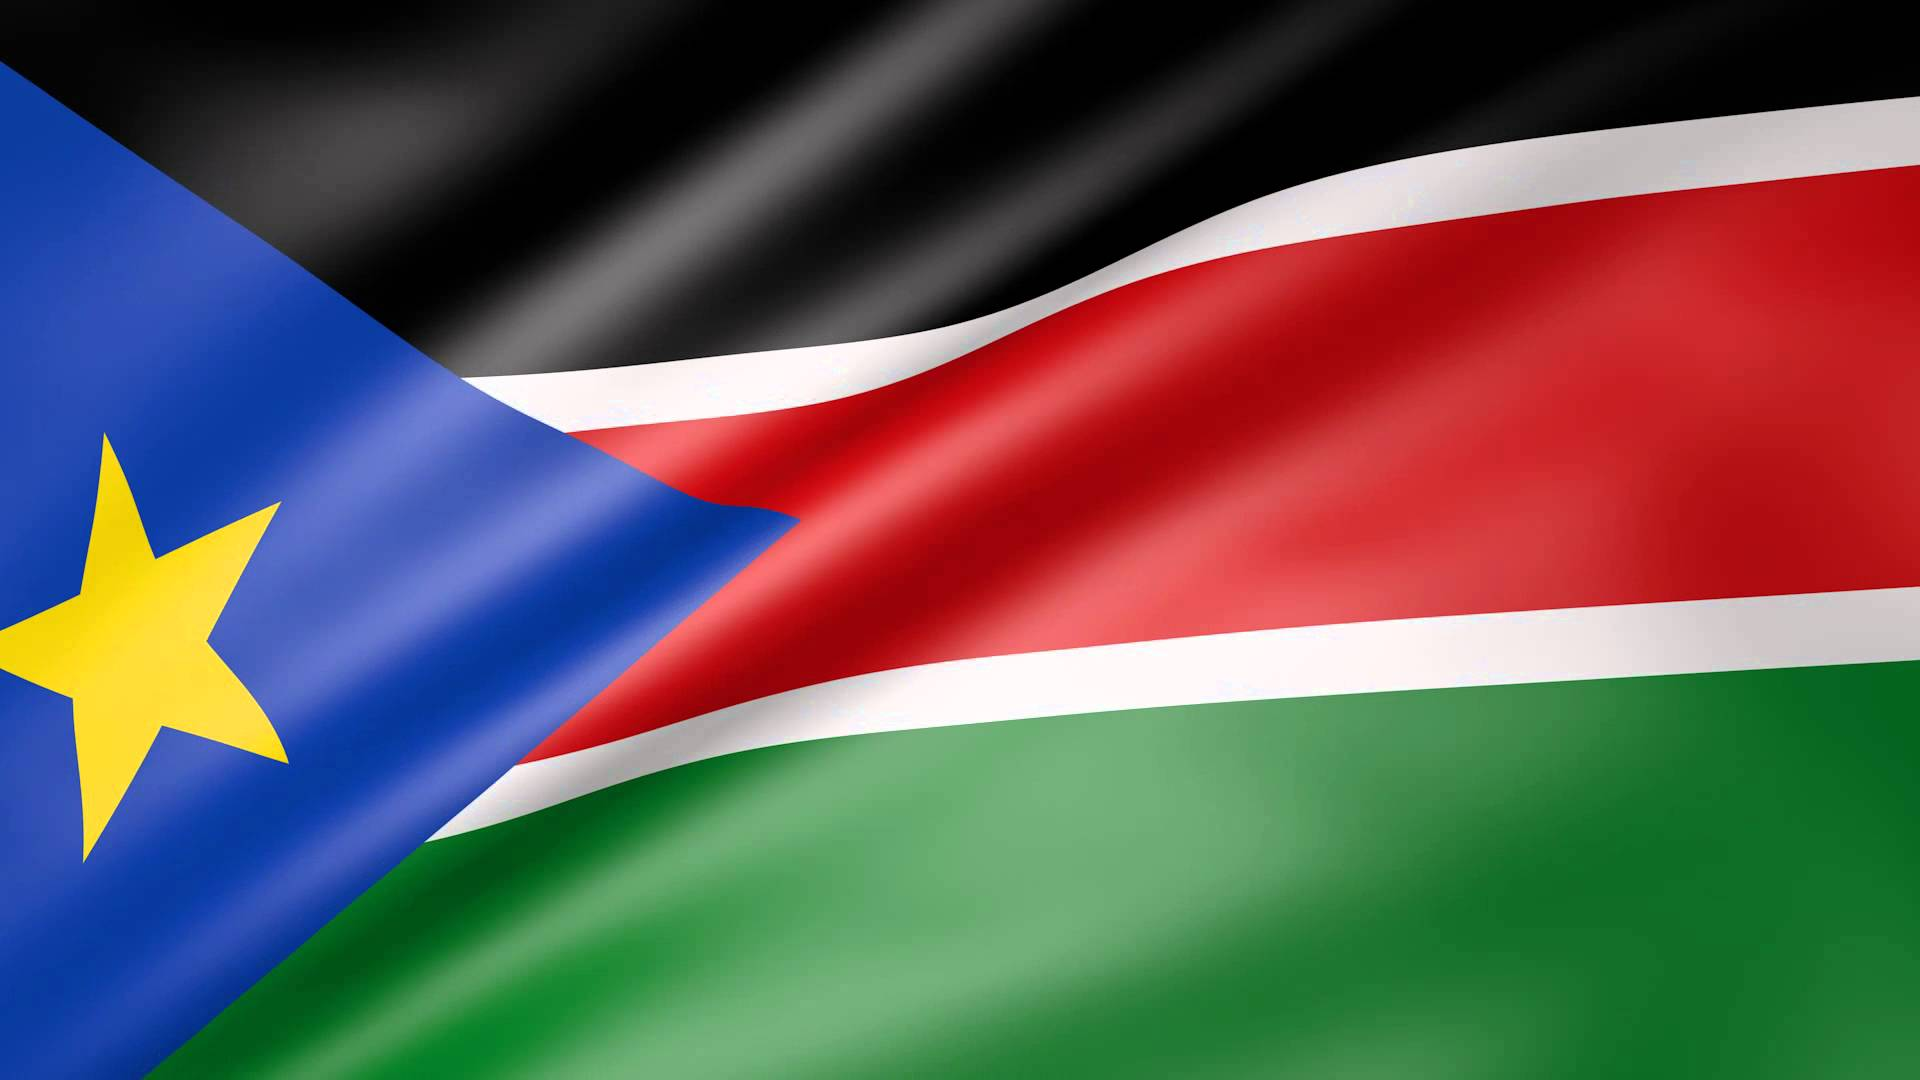 Best 53+ Sudan Wallpaper on HipWallpaper | South Sudan Wallpaper ...